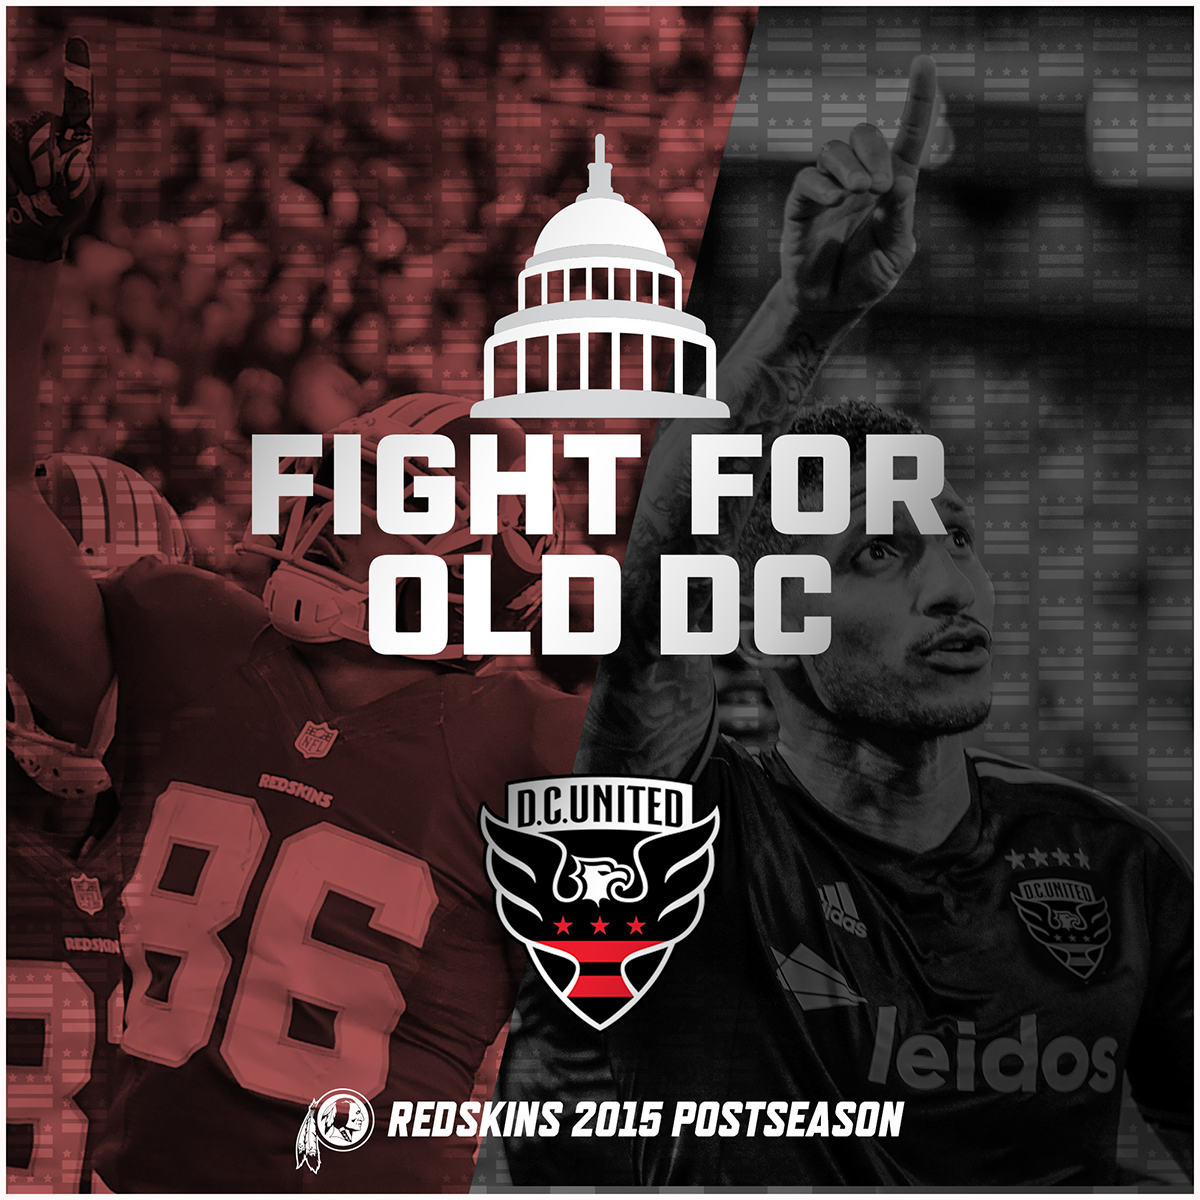 You like that, D.C.?! #NFLPlayoffs   Good luck to the @Redskins this weekend! #FightForOldDC #HTTR https://t.co/yeKZNcOddX